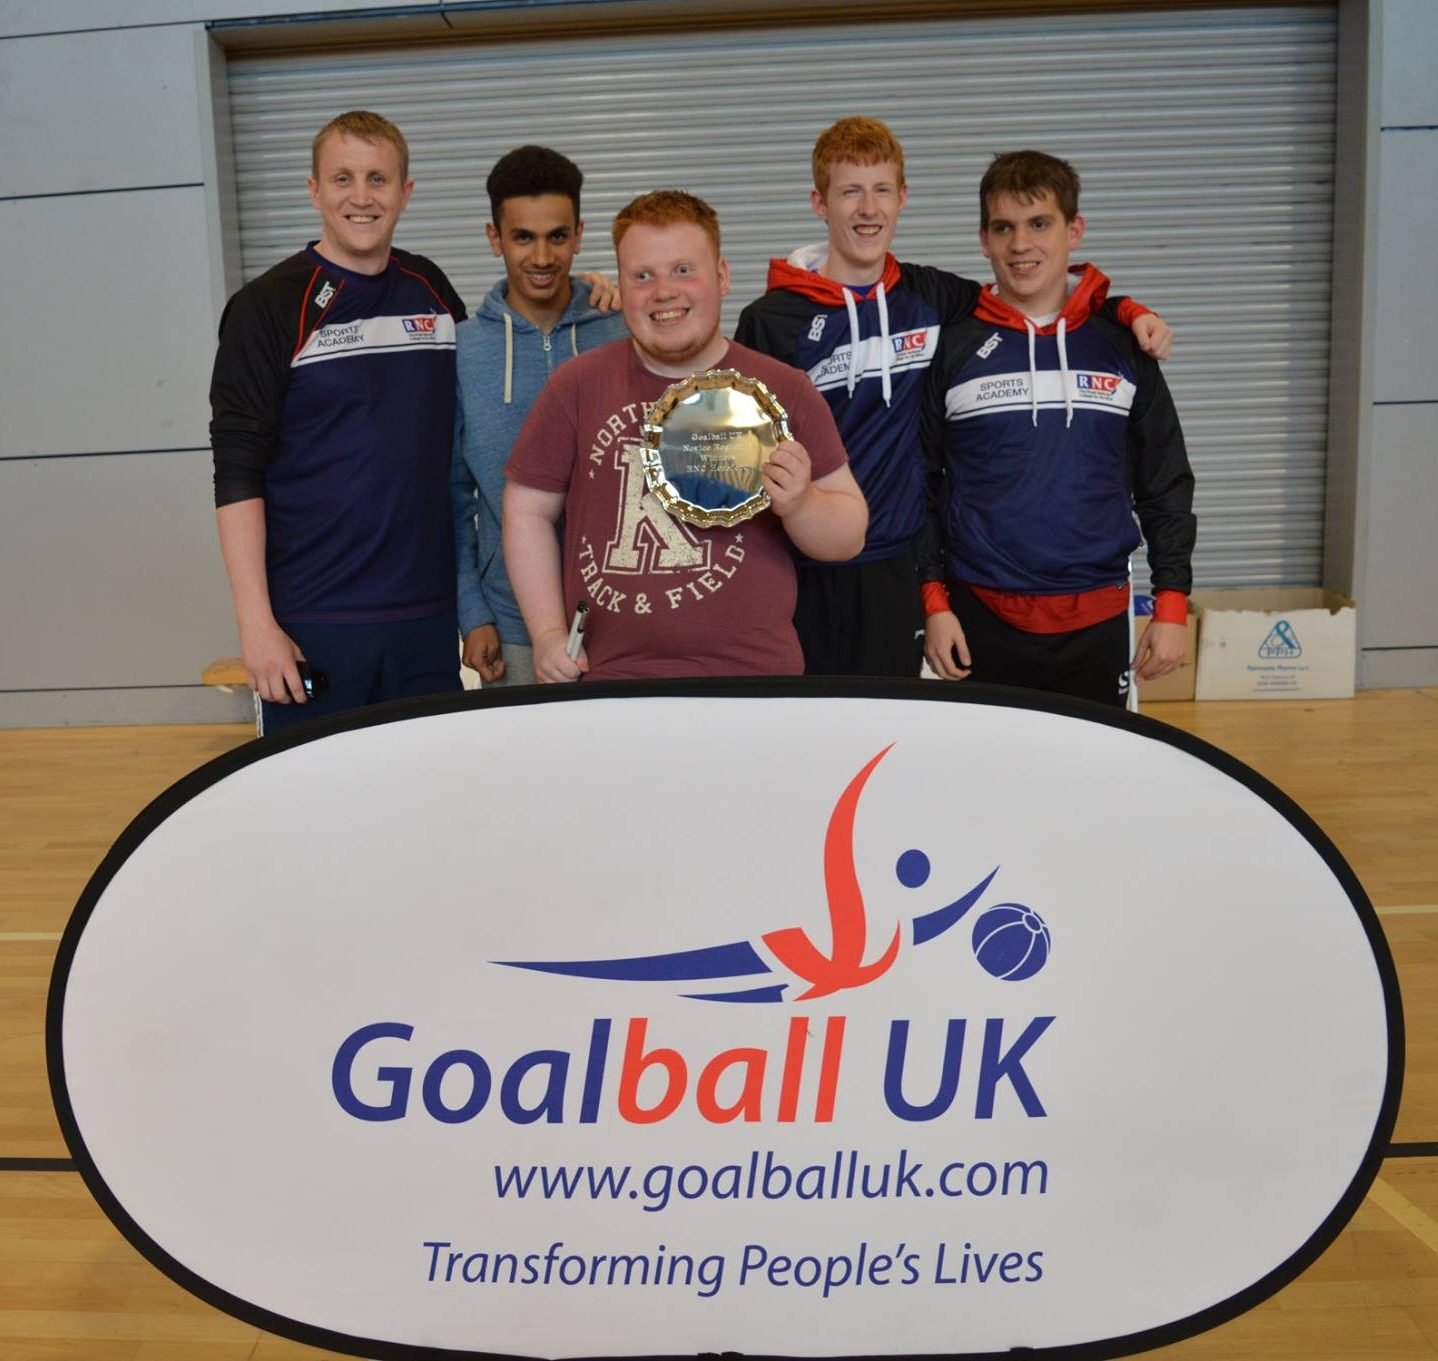 Image shows Ben stood holding a trophy along with members of the RNC goalball team. They are also stood with RNC and GB Womens coach Aaron Ford.